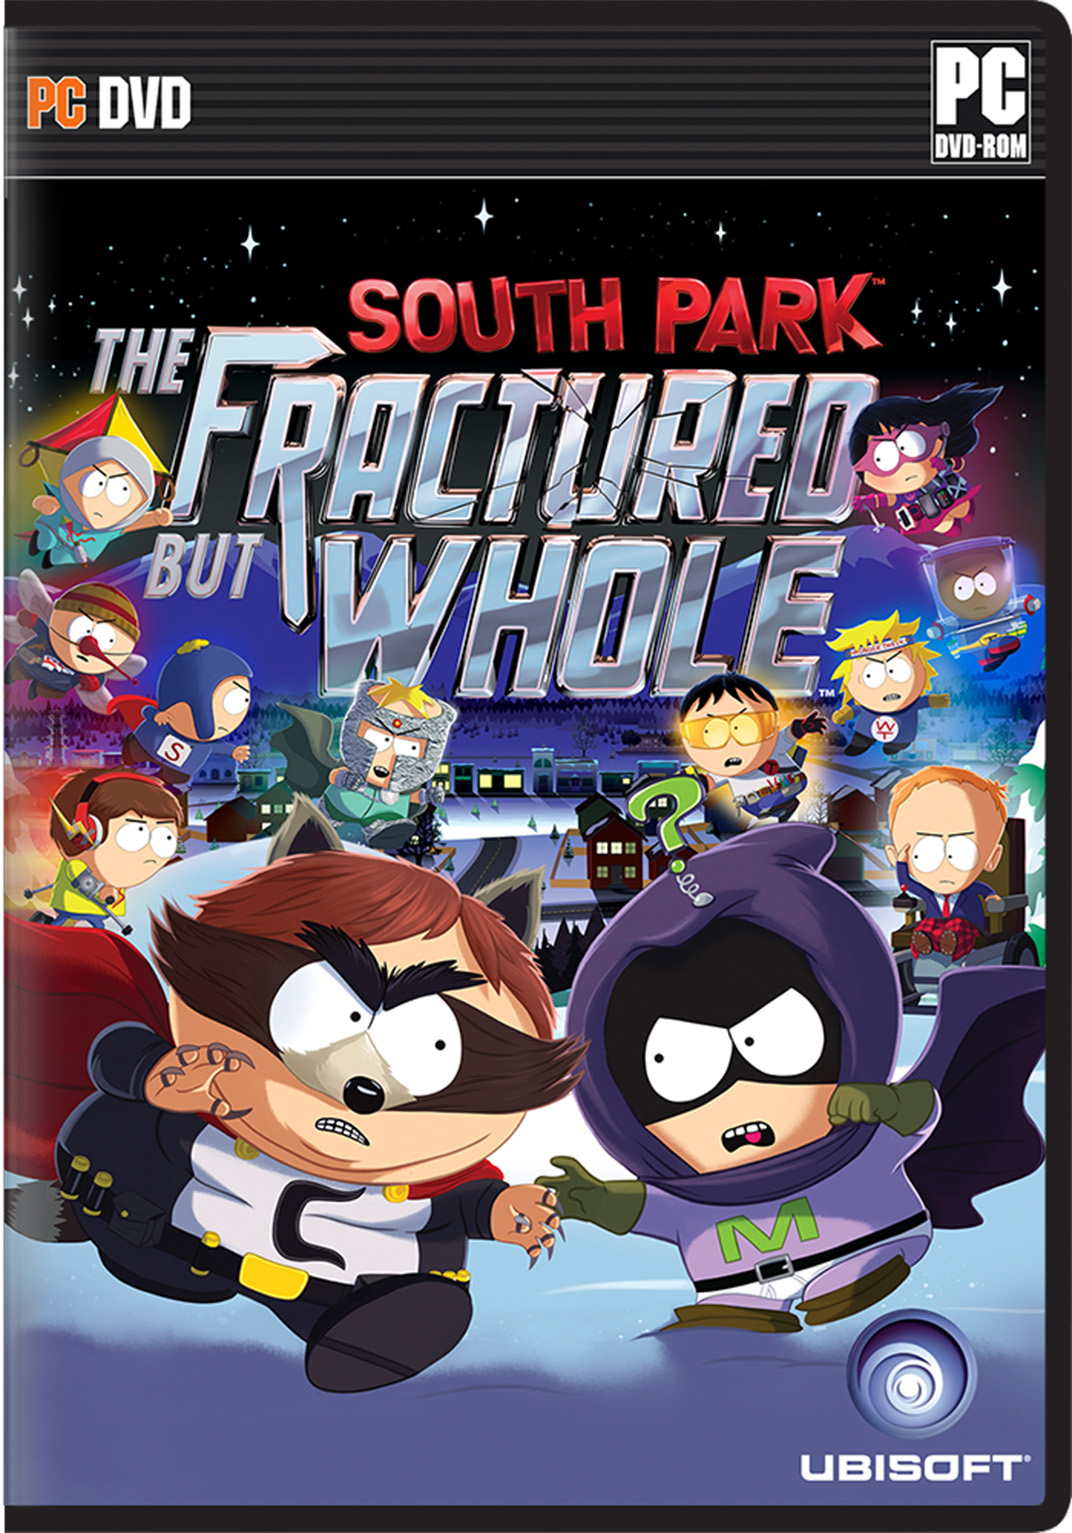 South Park: The Fractured But Whole PC Game